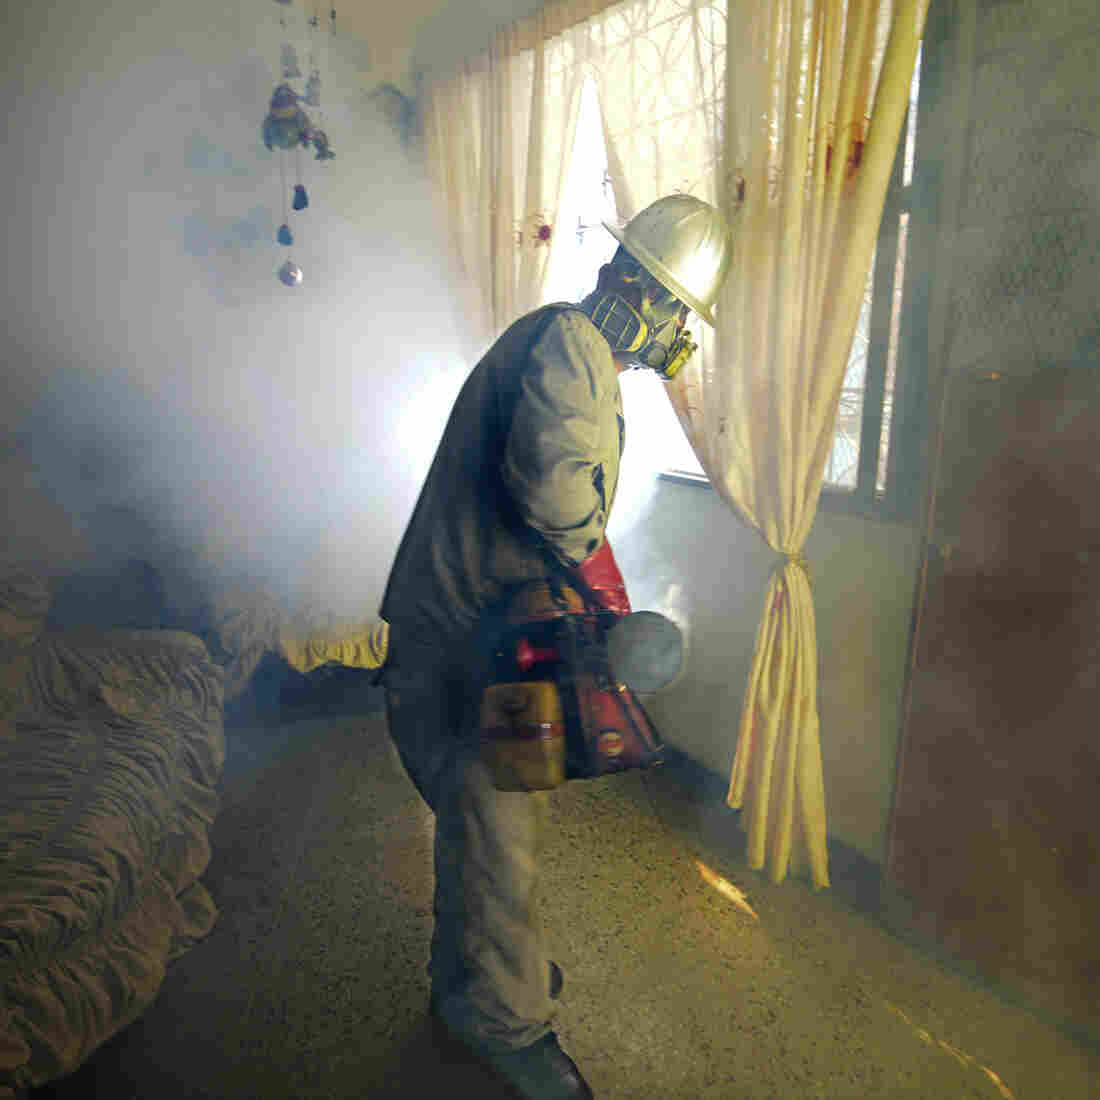 A Health Ministry employee fumigates against the Aedes aegypti mosquito, which can carry the Zika virus, at a home in Caracas, Venezuela, on Jan. 28.